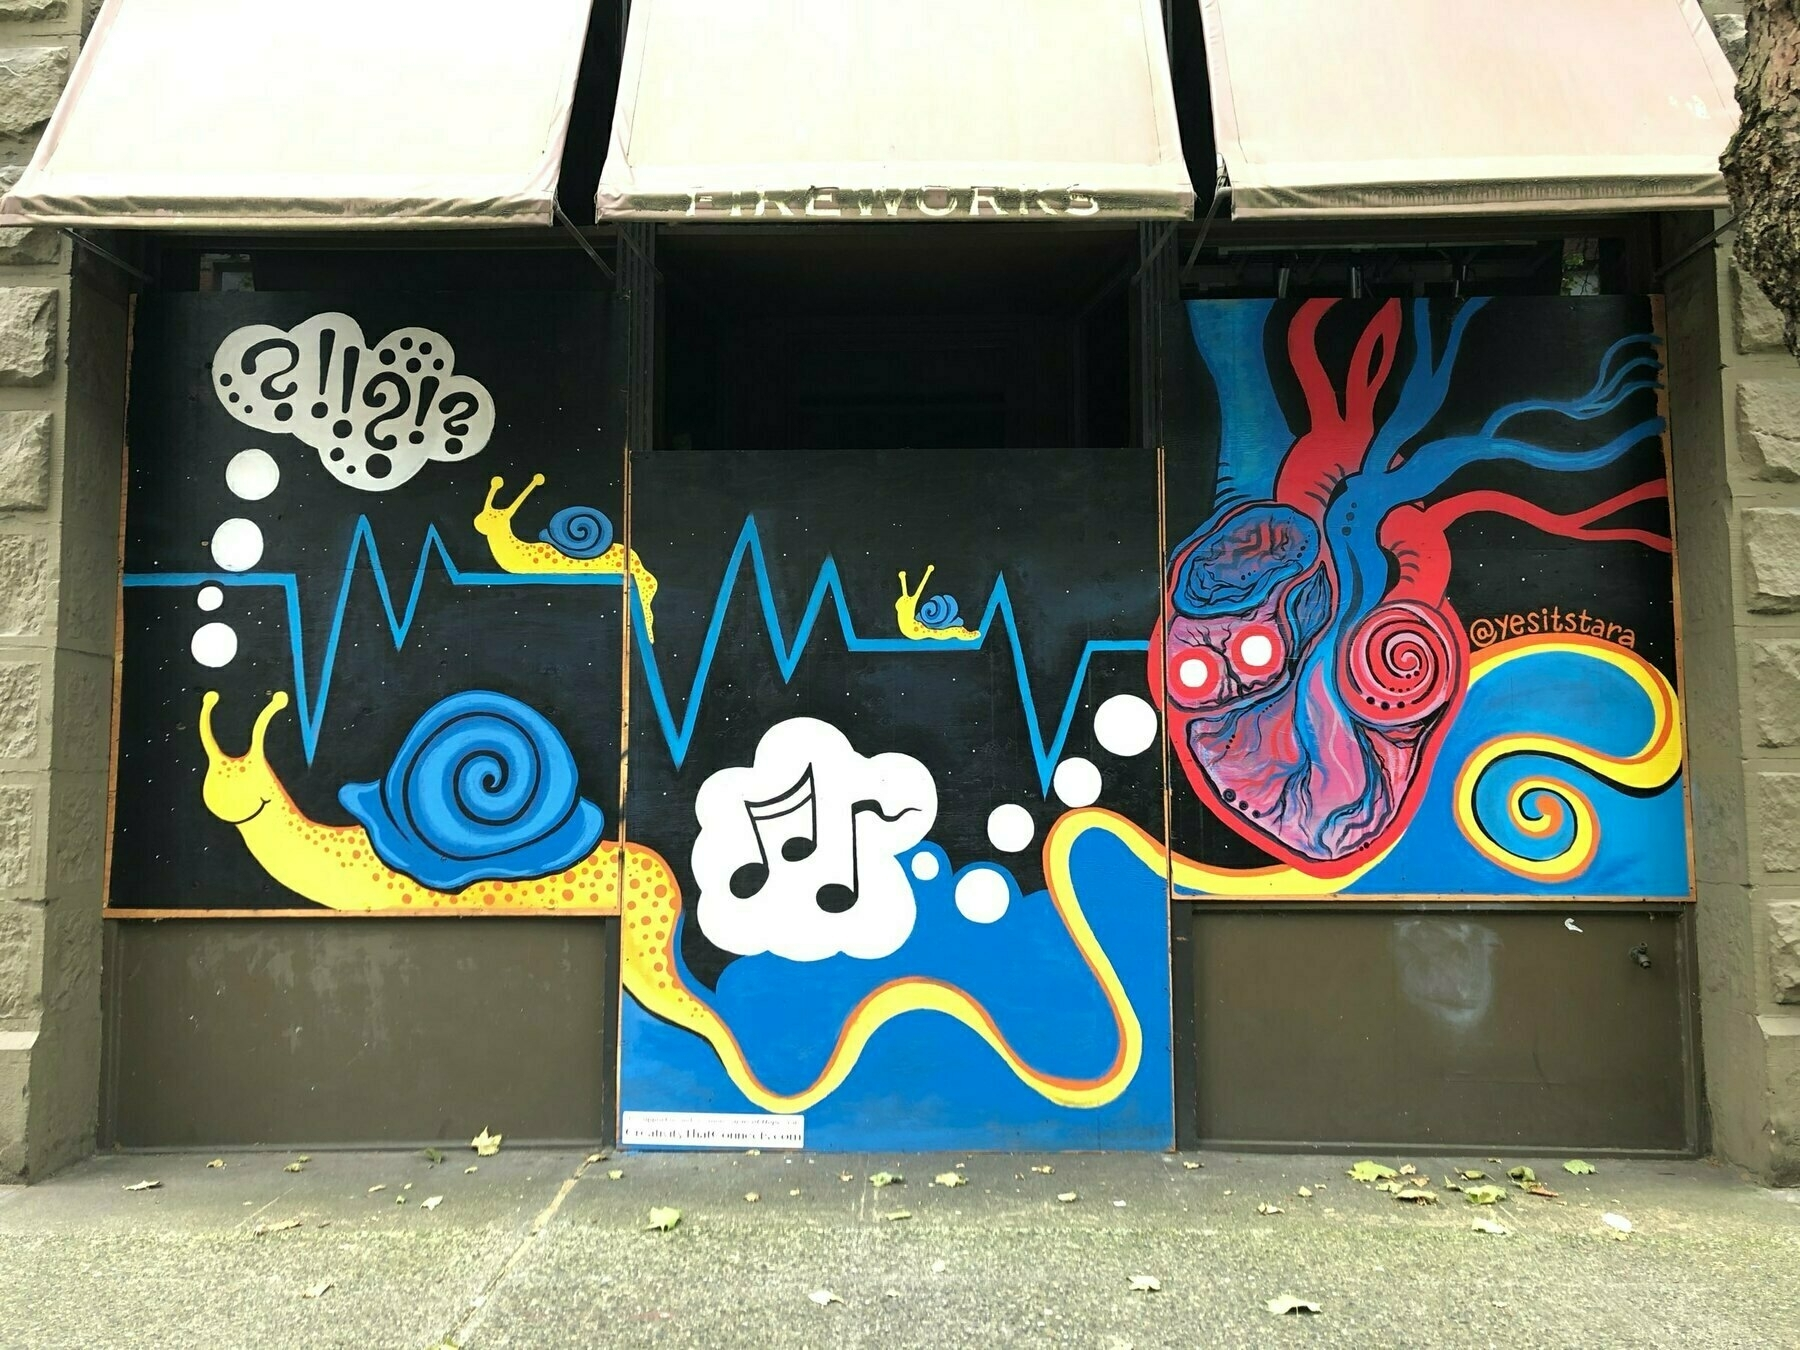 a mural with a yellow snail listening to music. his tail spins out into a long ribbon and wraps around a human heart.